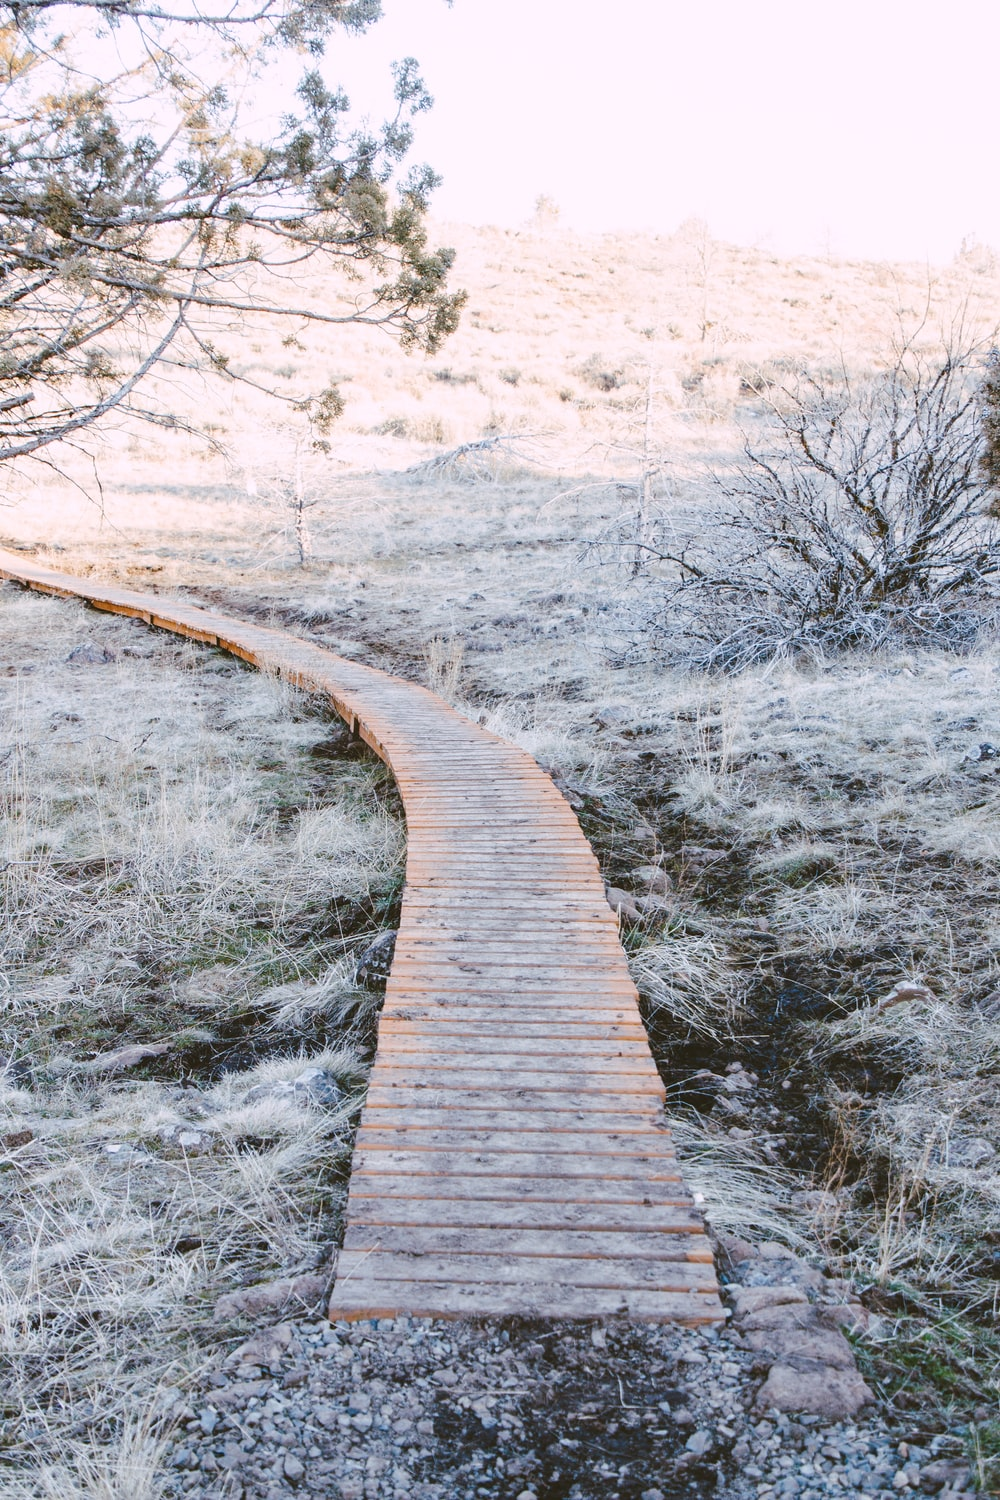 brown wooden pathway in the middle of snow covered ground